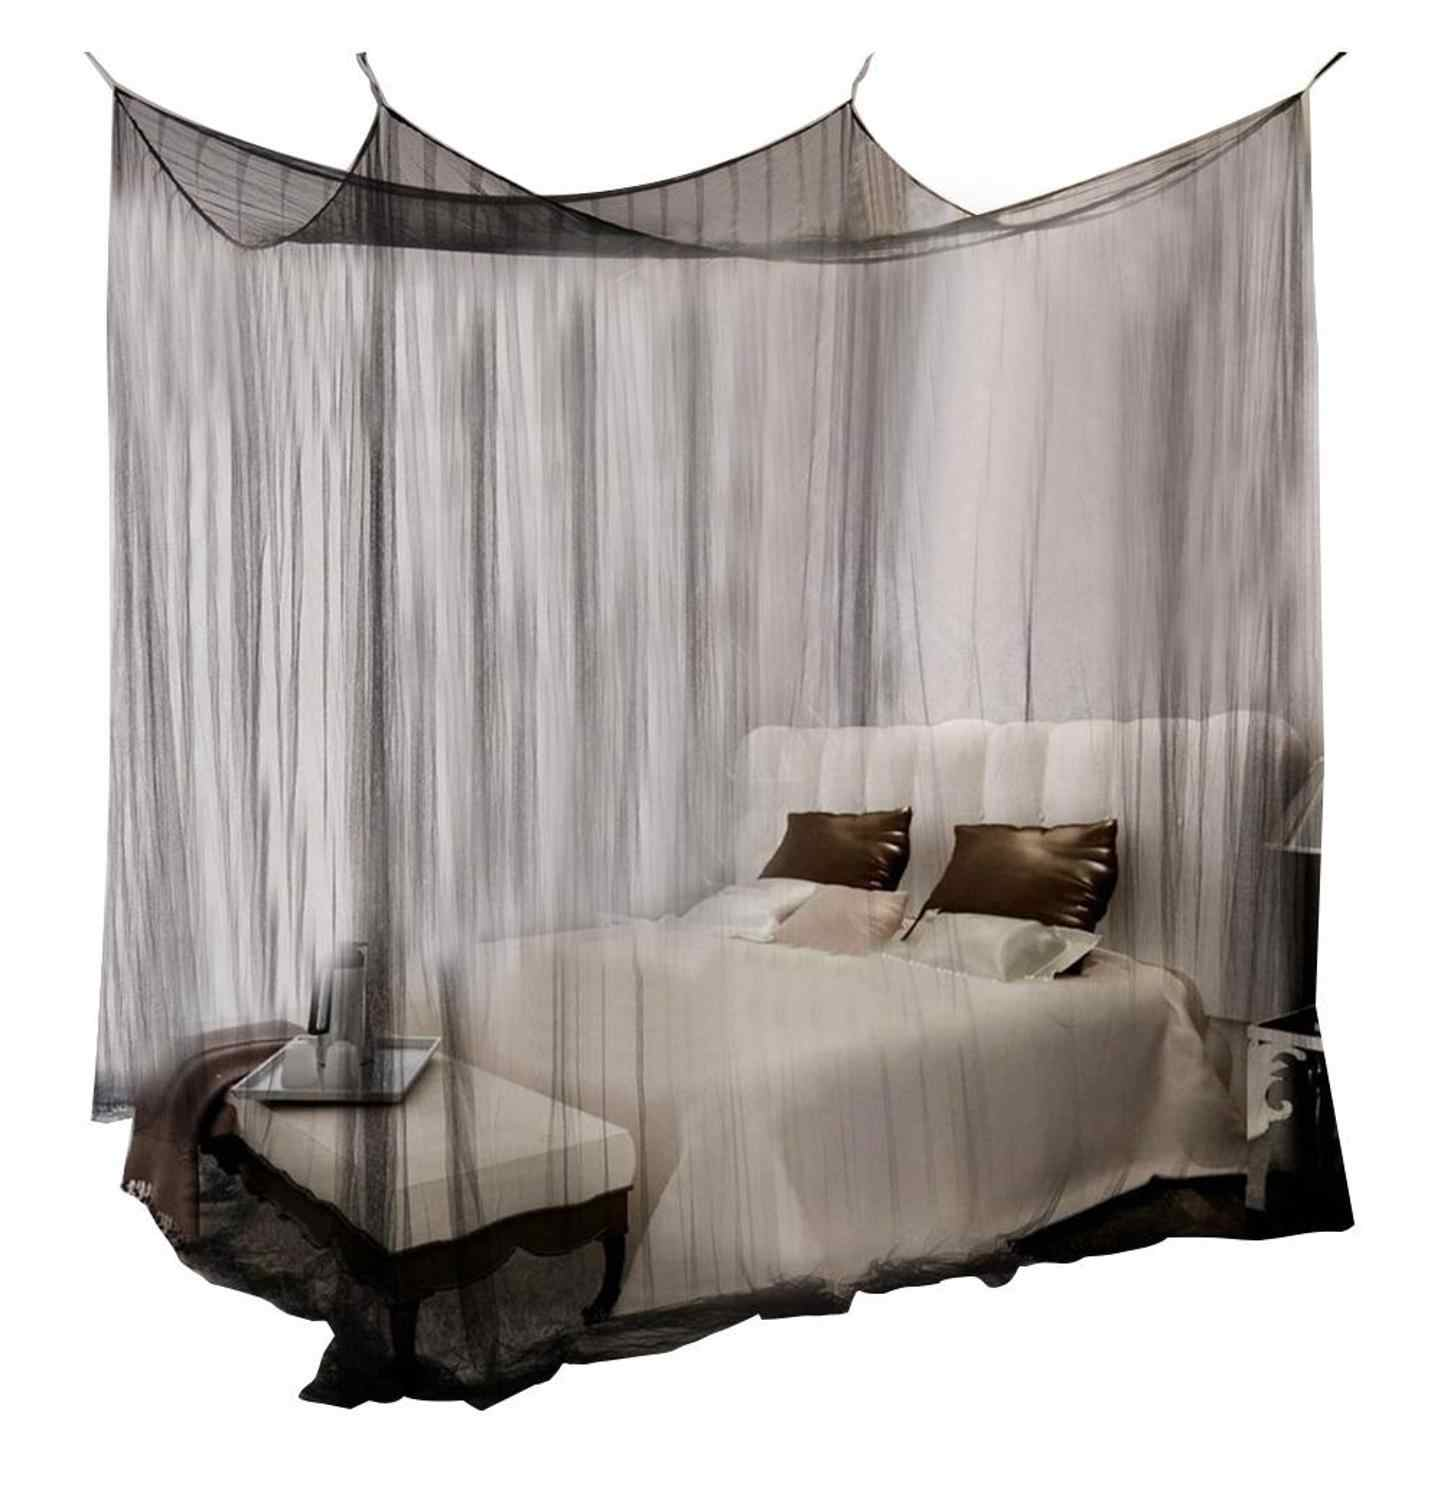 Picture of: 100 Cotton Mosquito Net Black White For Double Four Corner Bed Post Bed Canopy Mosquito Net Full Queen King Size Bedding Net Mosquito Net Aliexpress